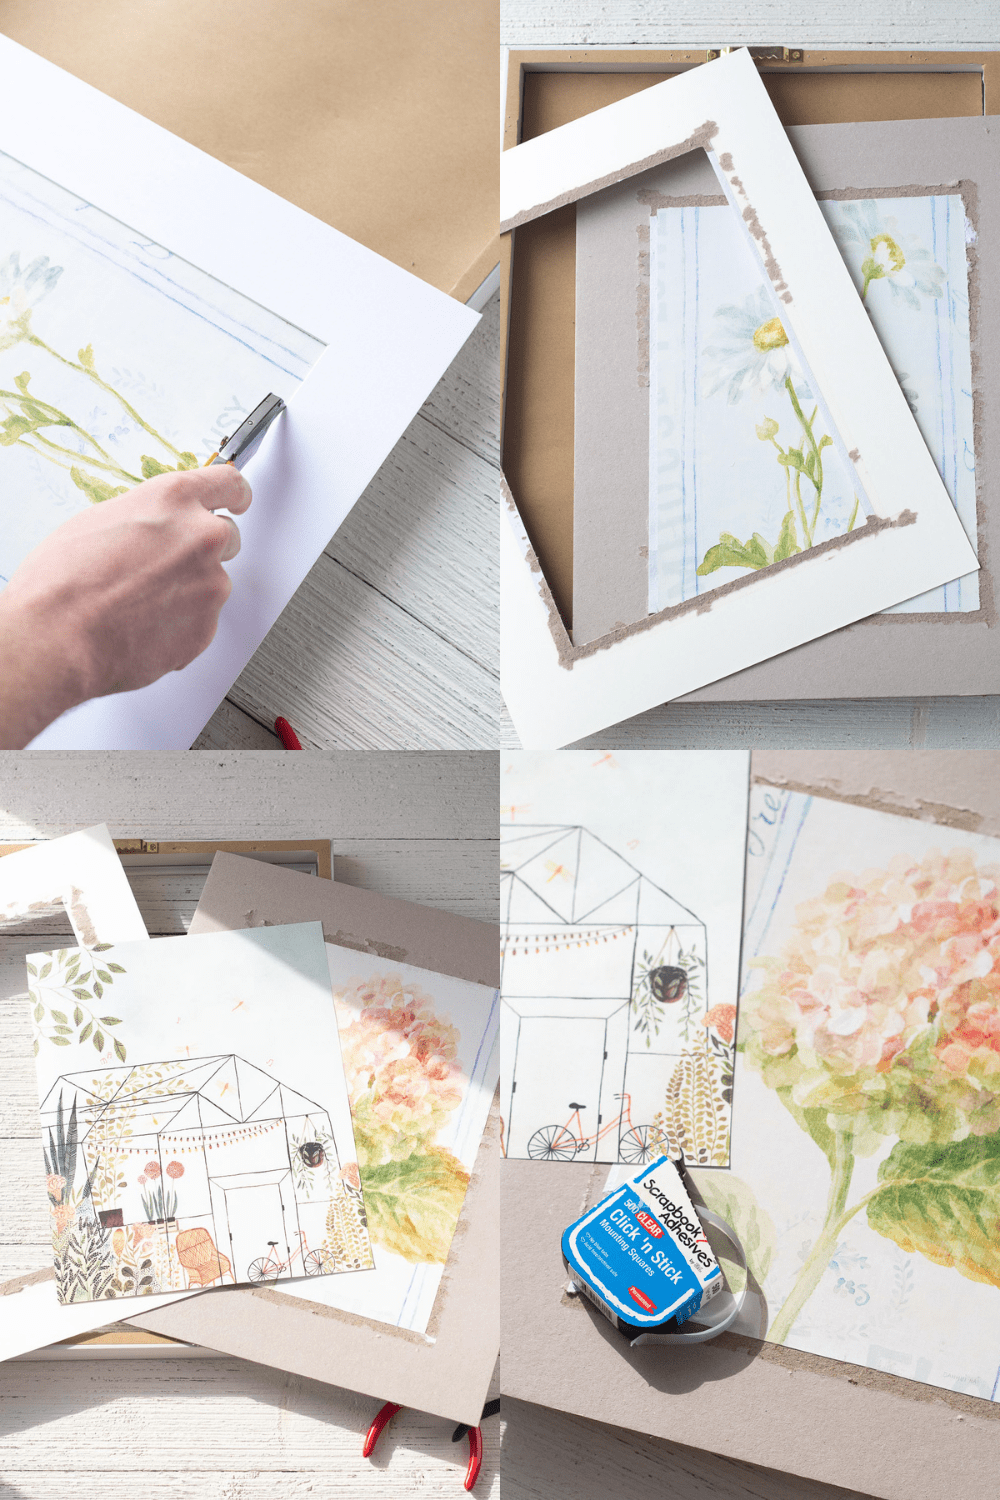 Four images in a collage showing the step by step process of replacing the art in an old framed art piece.